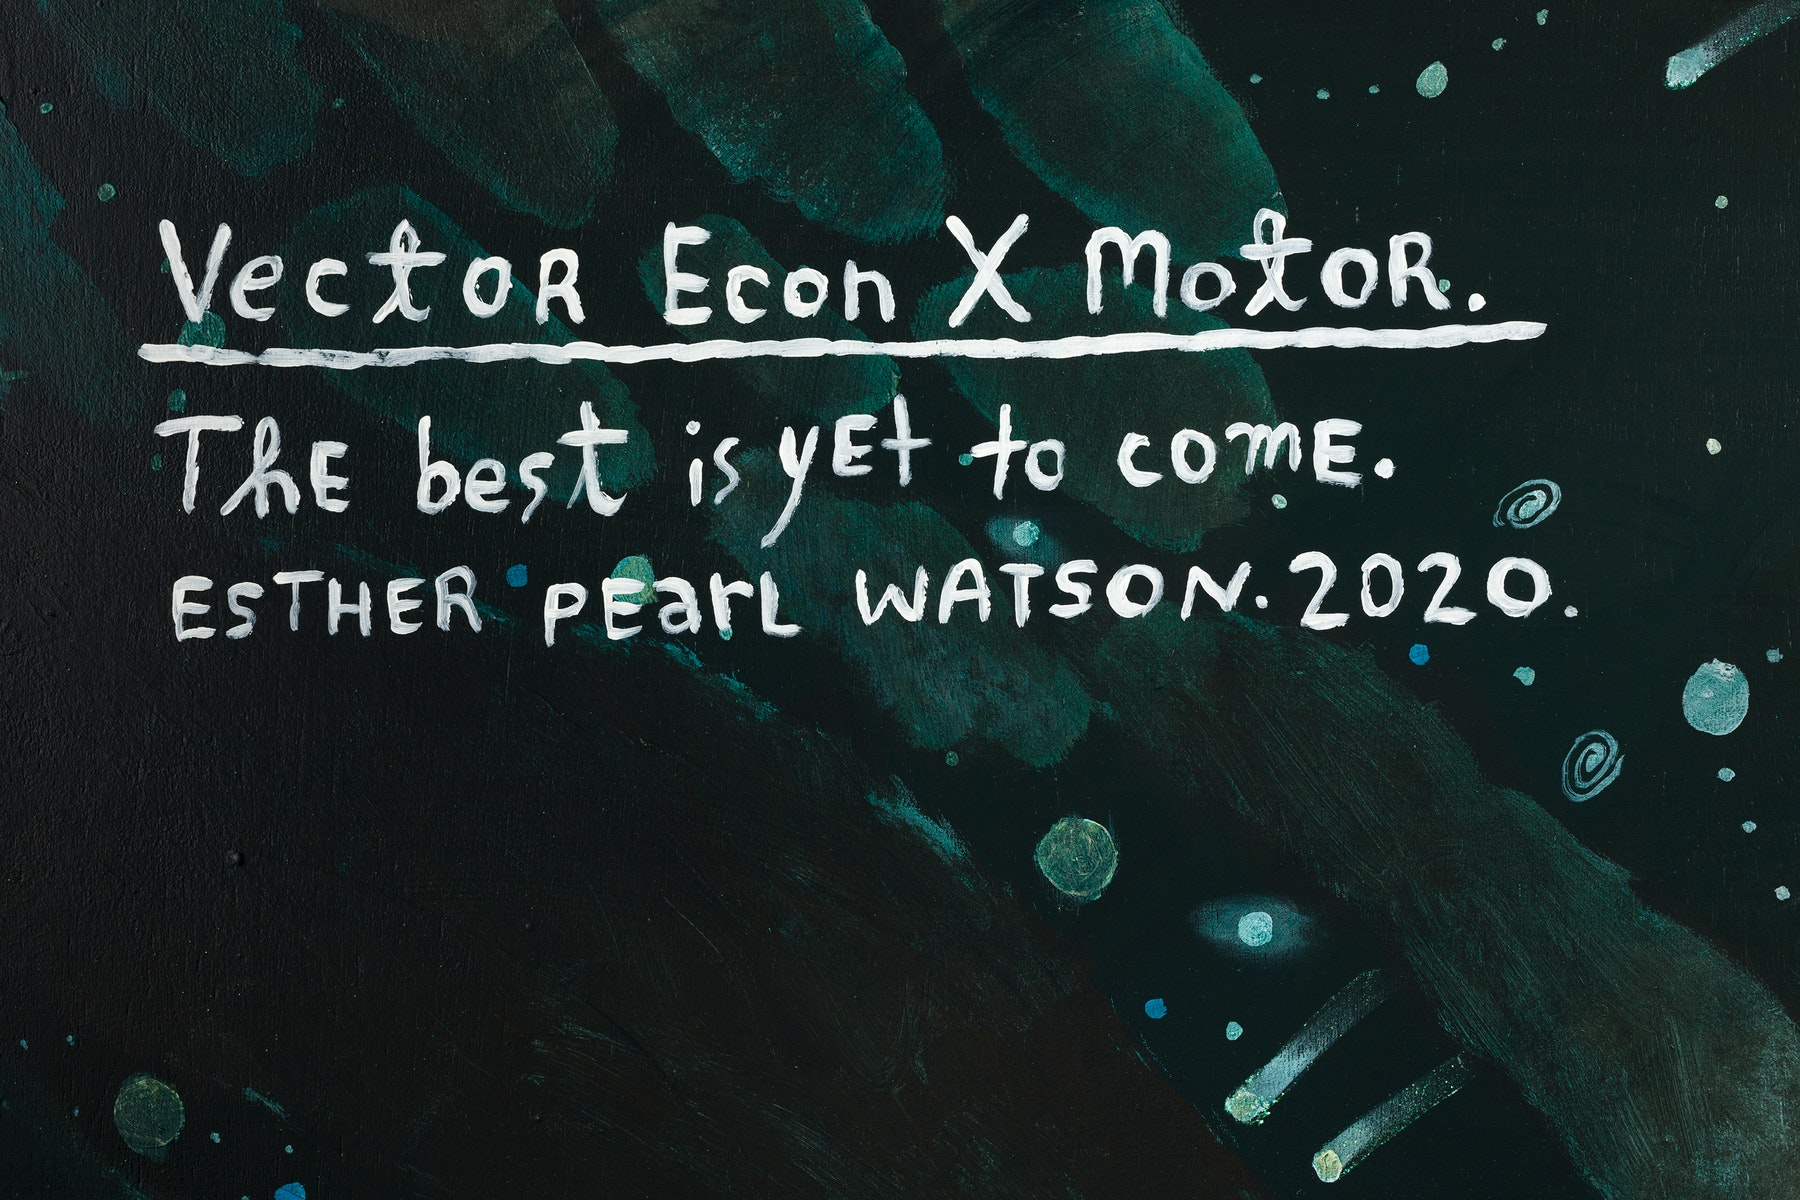 """Esther Pearl Watson """"Vector Econ X Motor,"""" 2020 Acrylic, glitter, foil paper, plastic jewels, on panel 60 x 60"""" [HxW] (152.4 x 152.4 cm) Inventory #EPW213 Courtesy of the artist and Vielmetter Los Angeles Photo credit: Jeff McLane"""